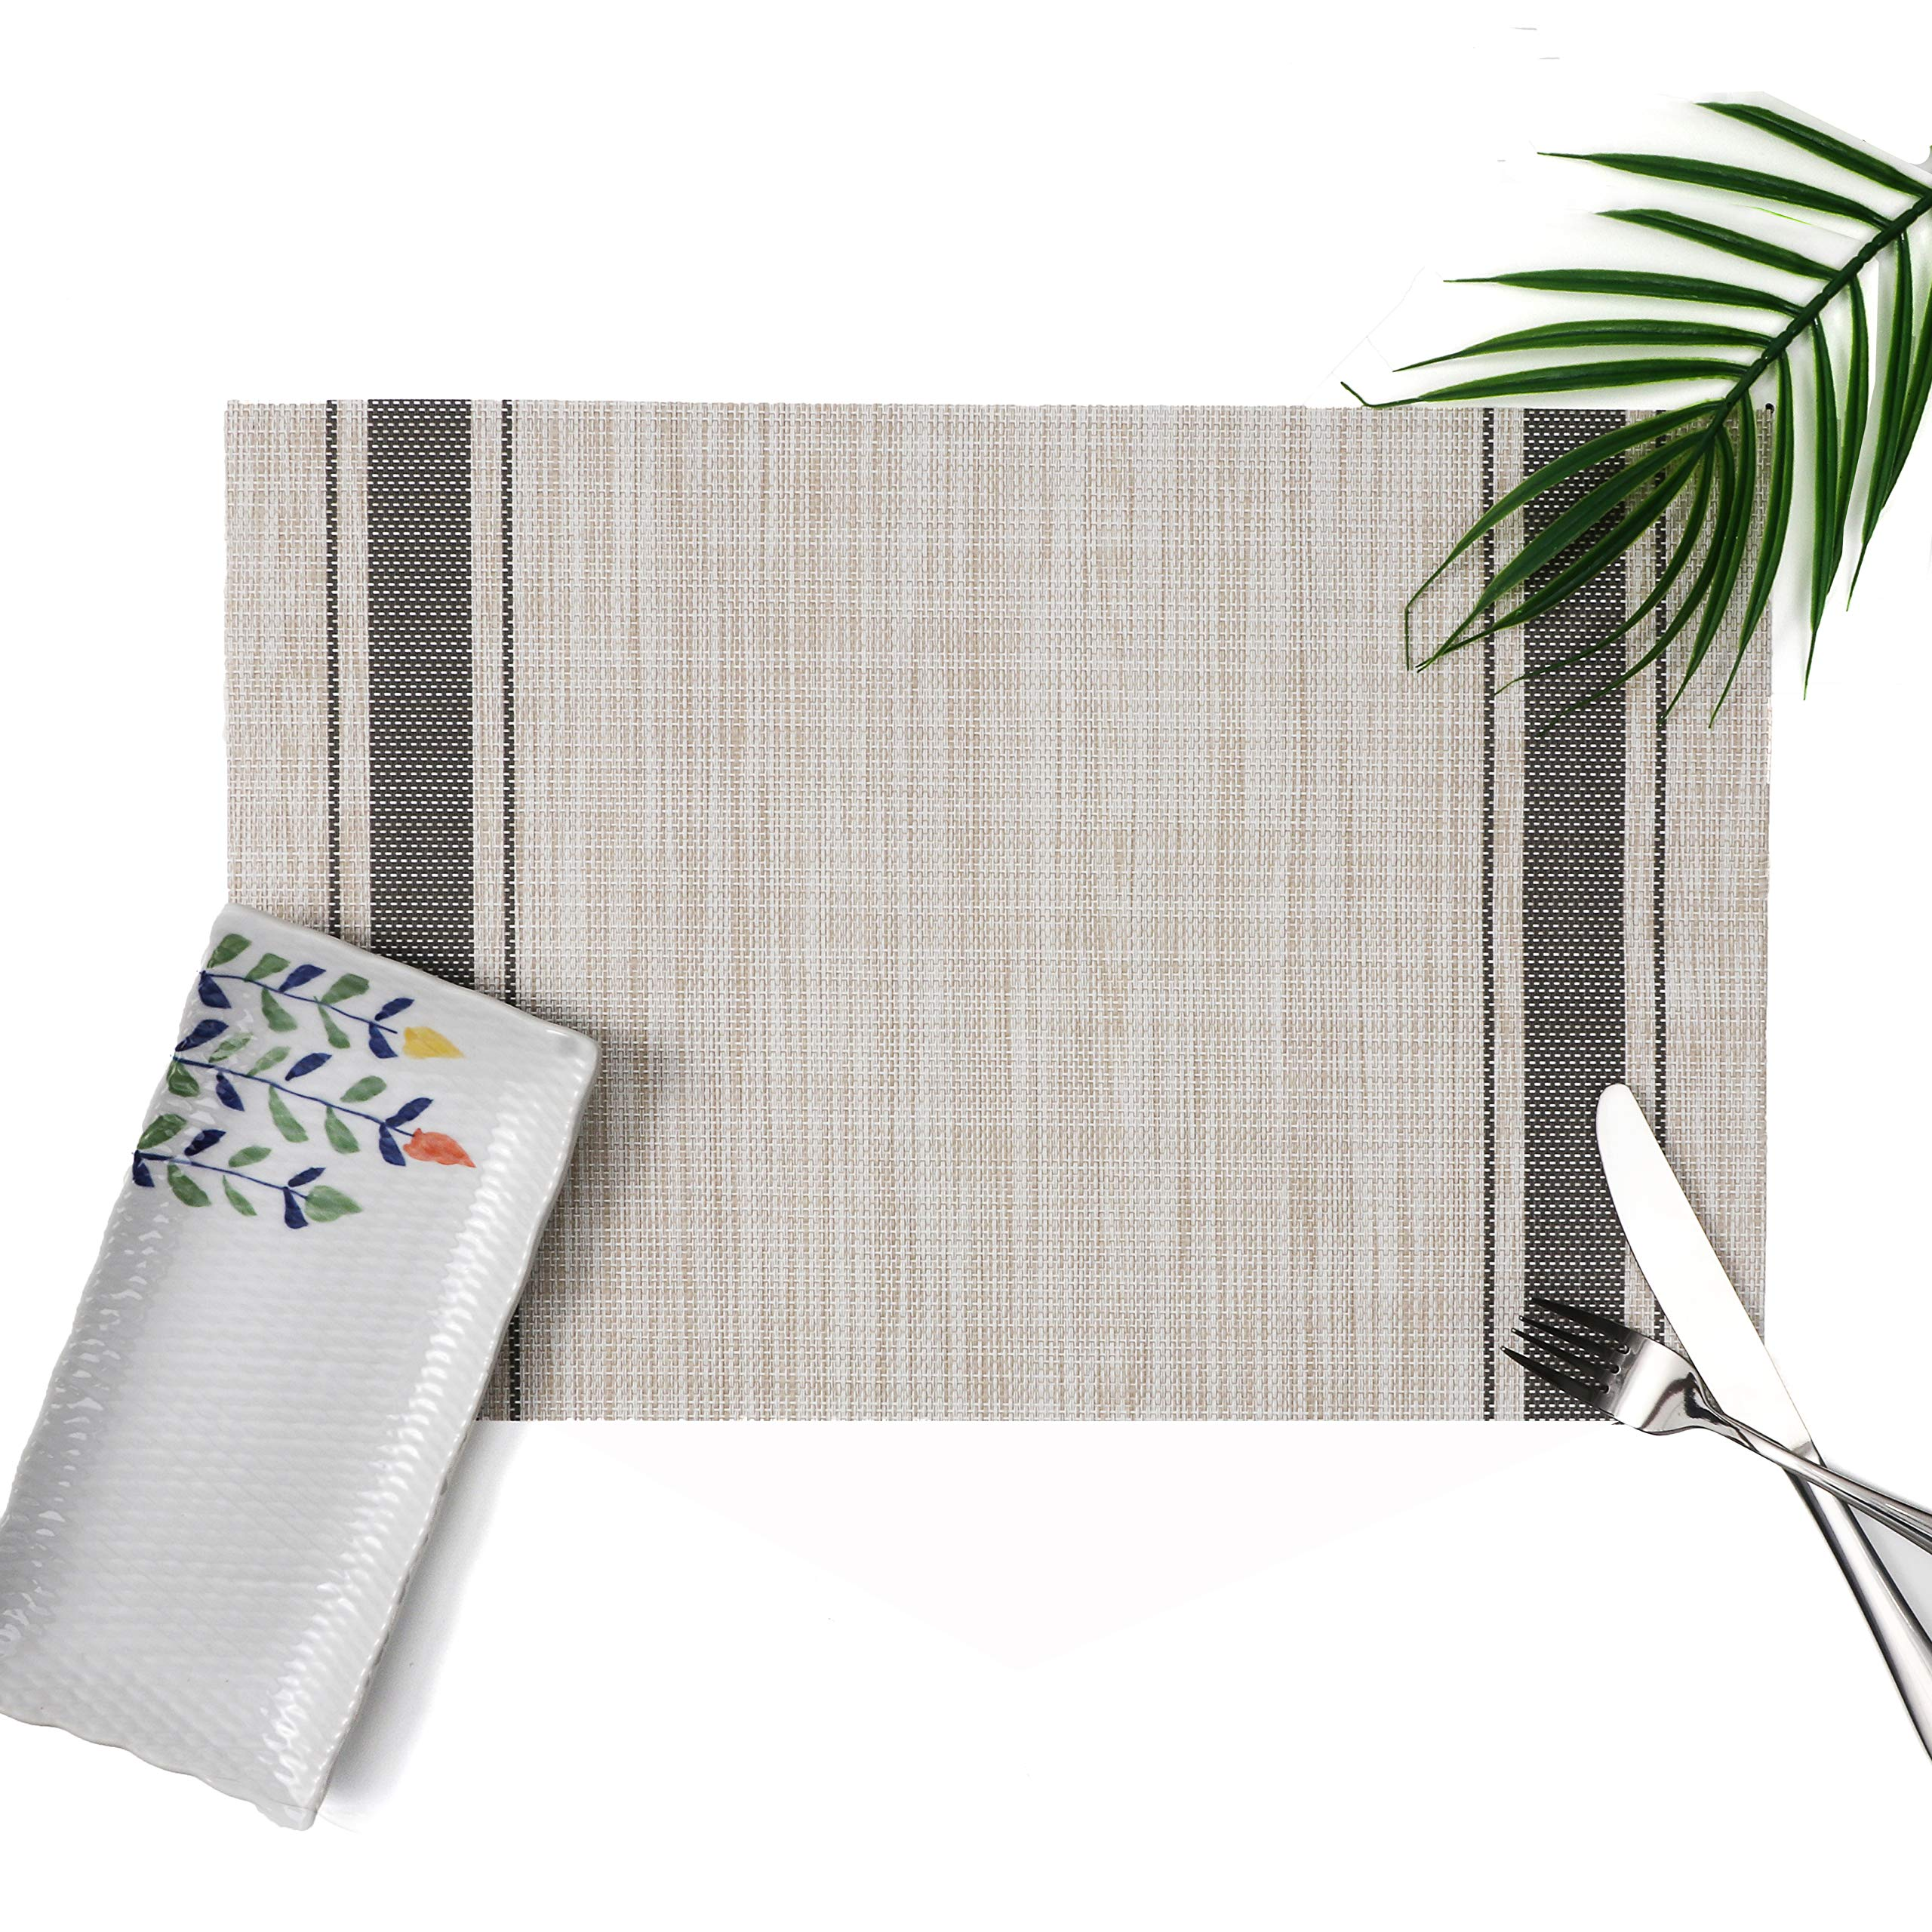 Millie Home Placemats for Dining Table Vinyl Heat Resistant Wipeable Placemat Non-Slip Washable PVC Kitchen Place Mats Set of 6,Gray Stripe